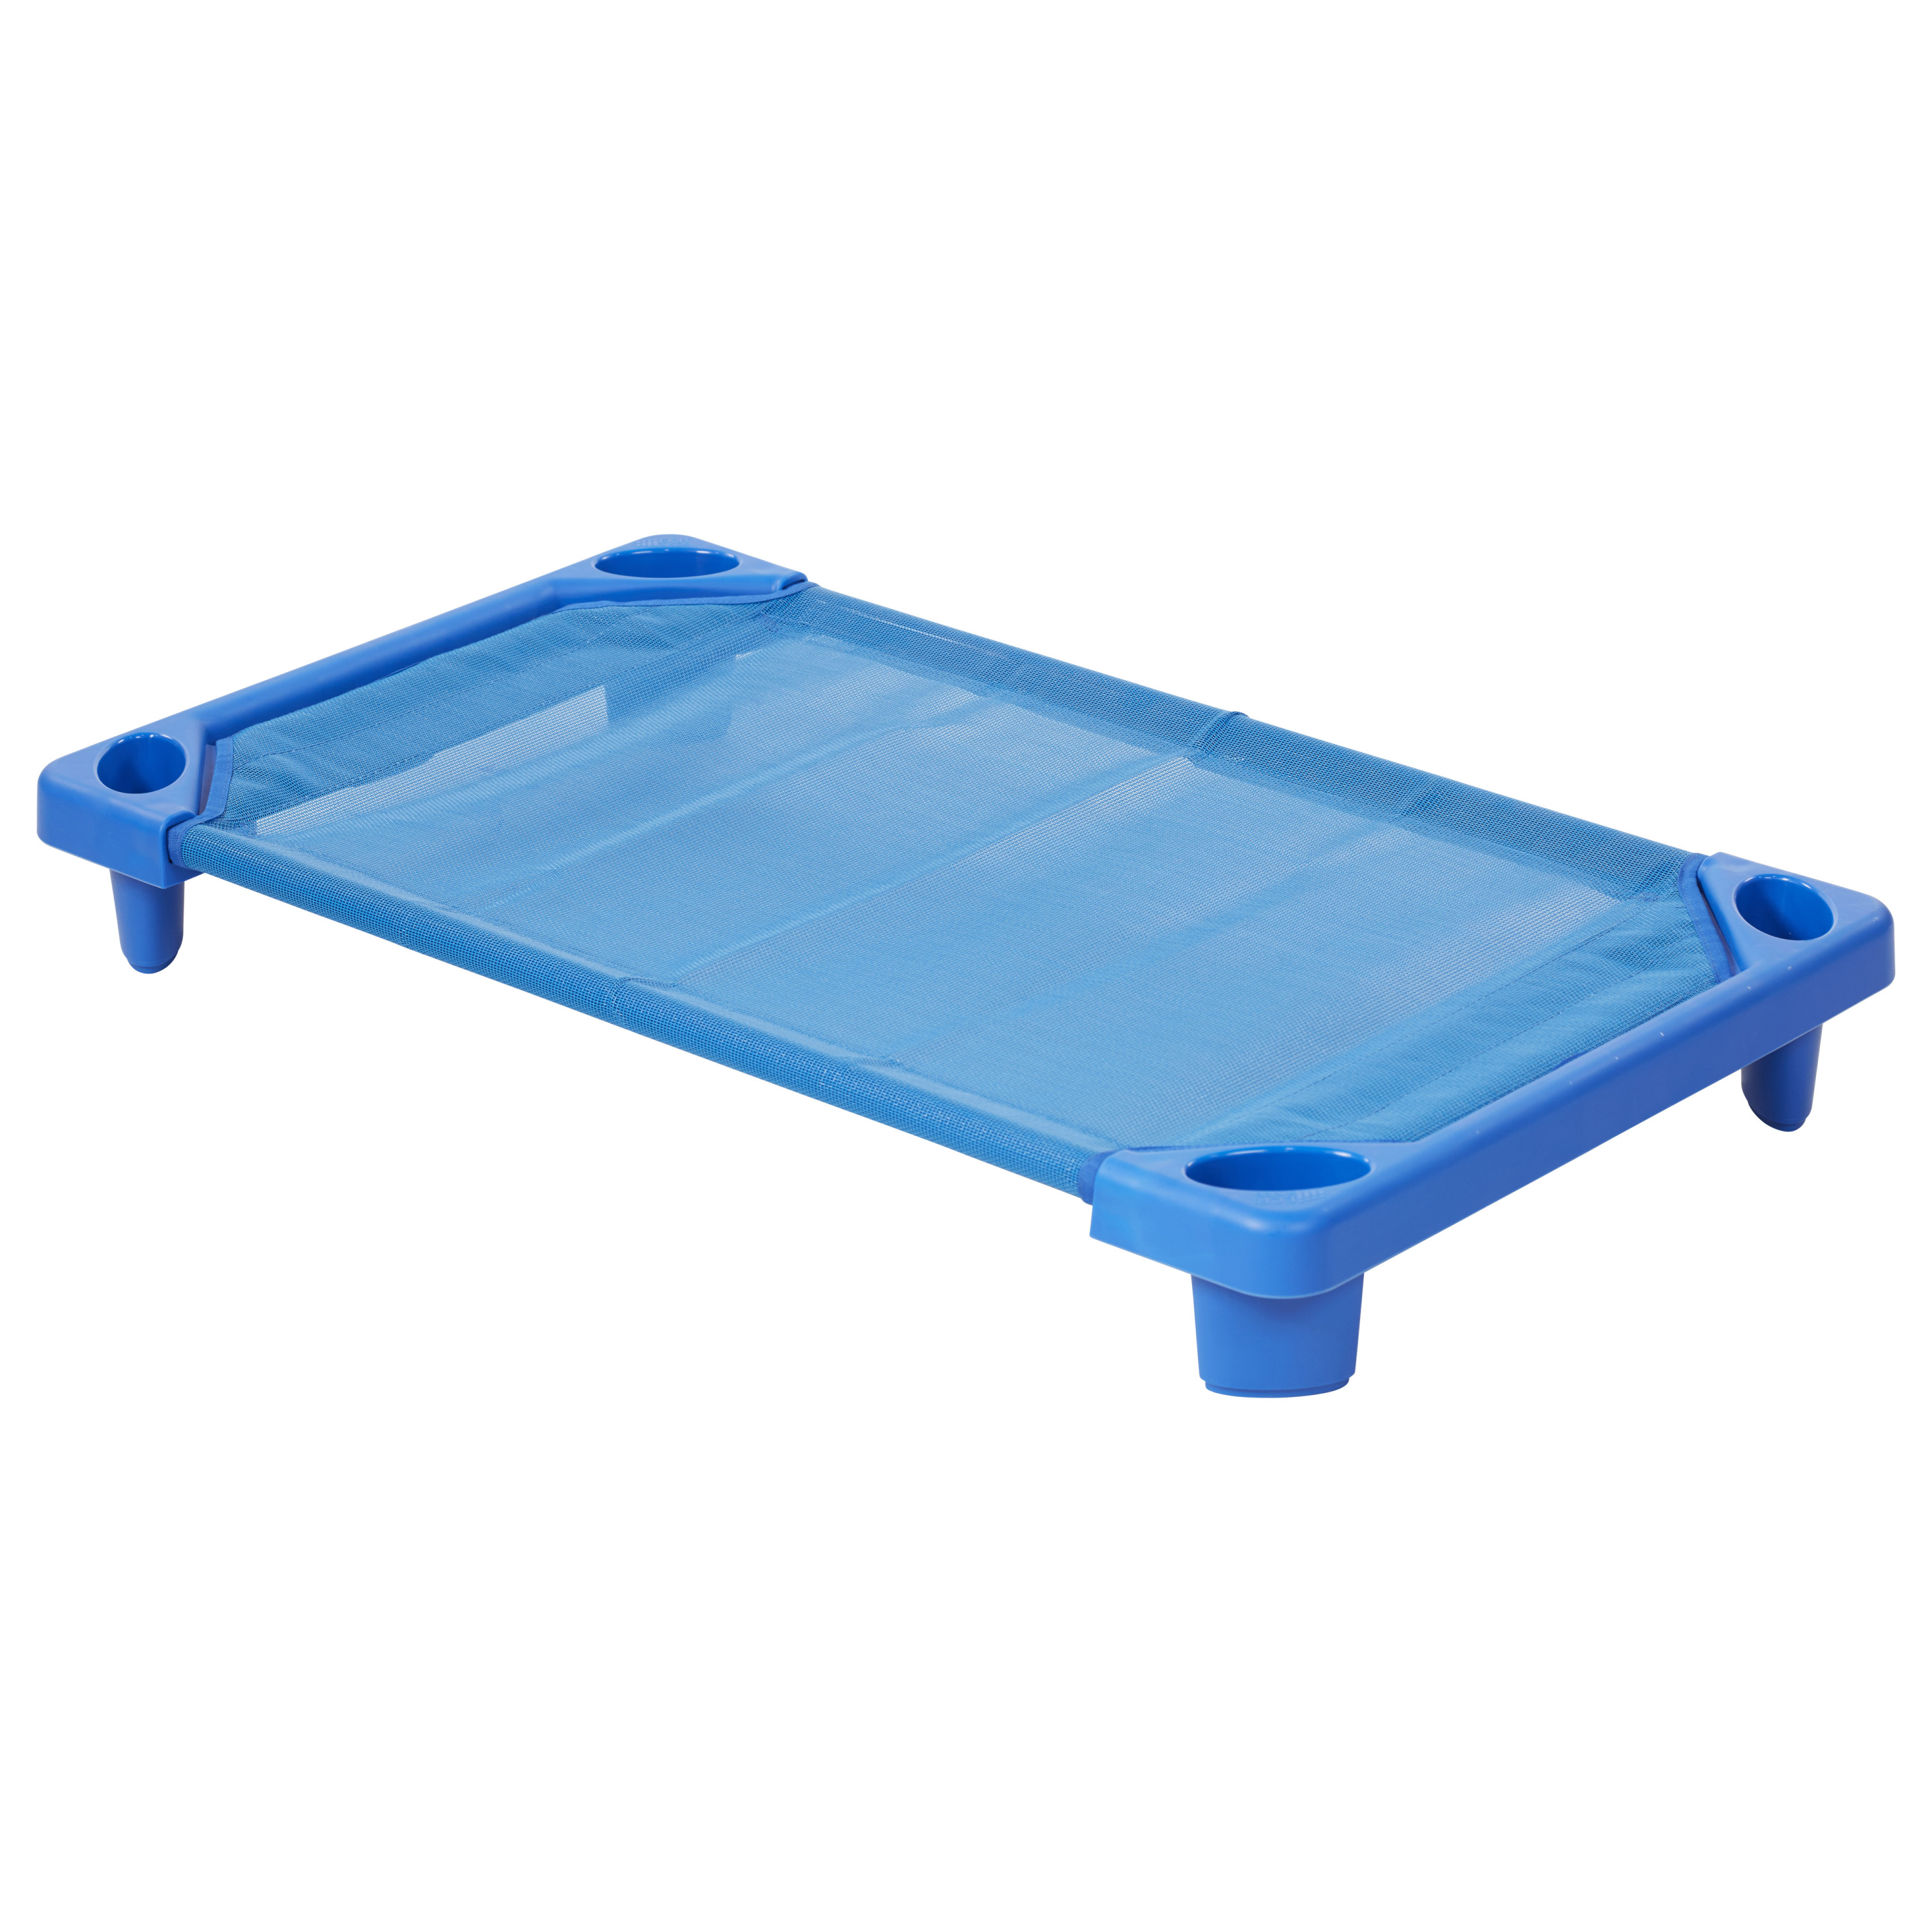 Streamline Cot Single Toddler Assembled Blue by ECR4Kids